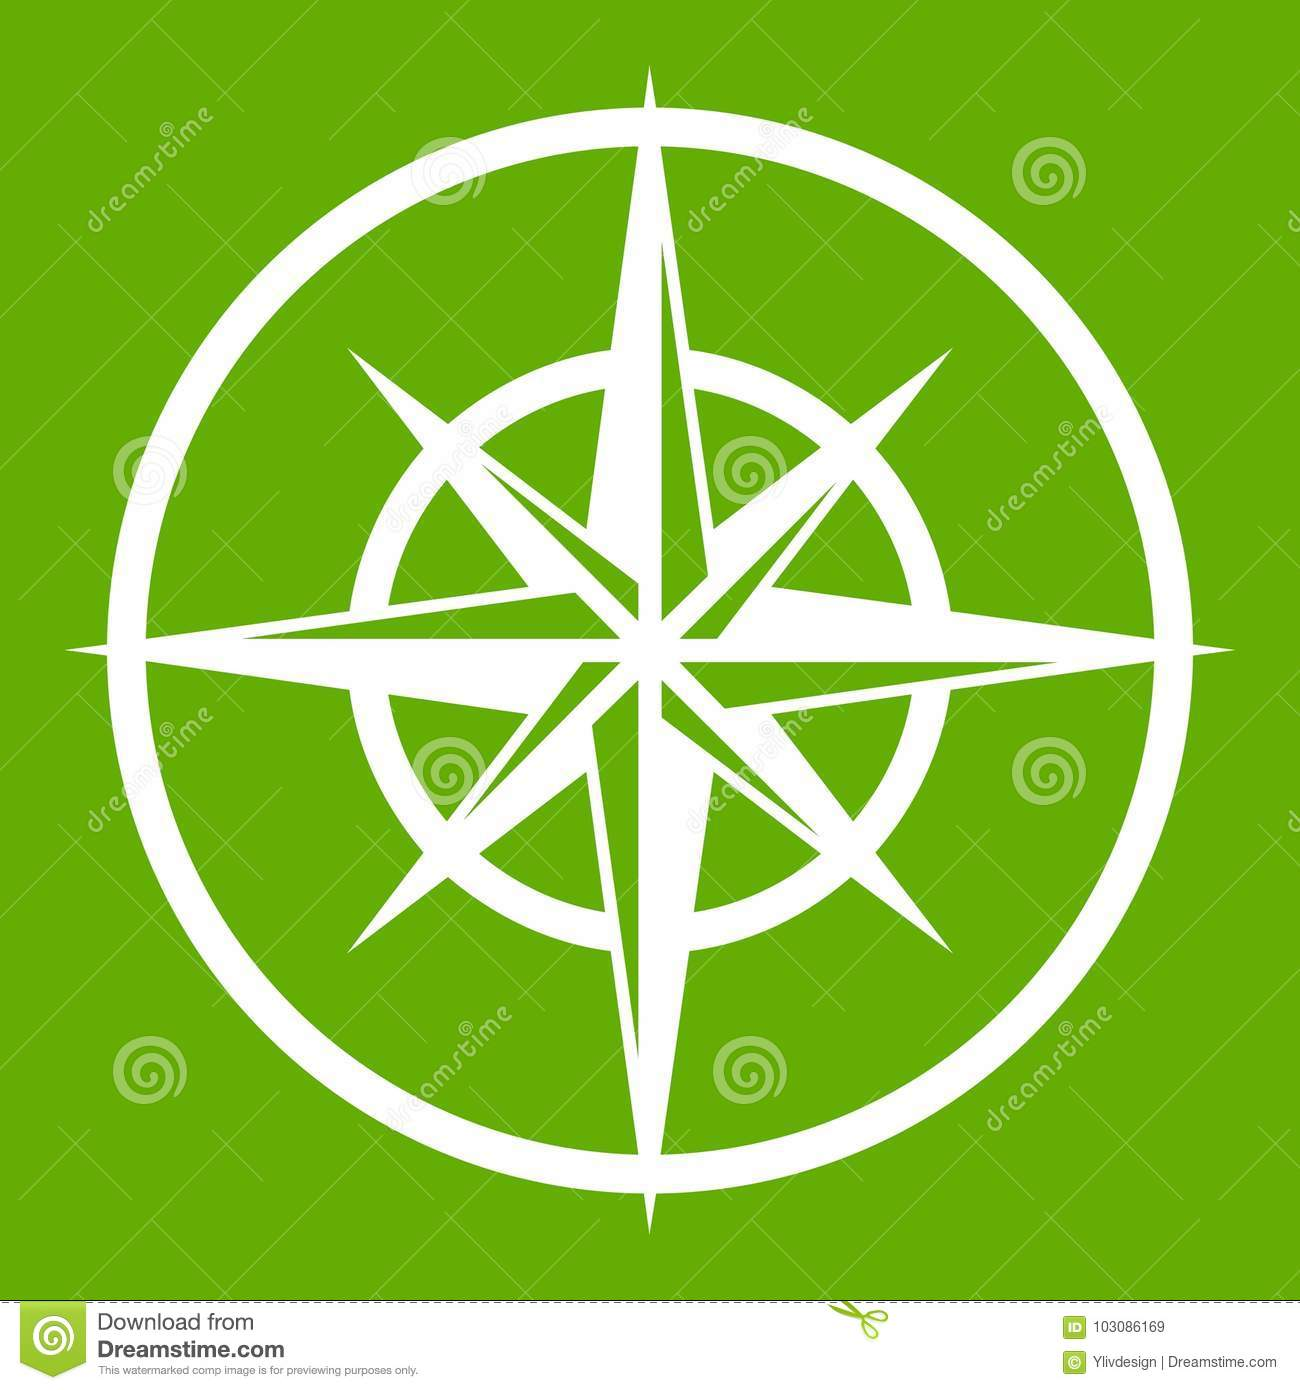 Sign Of Compass To Determine Cardinal Directions Stock